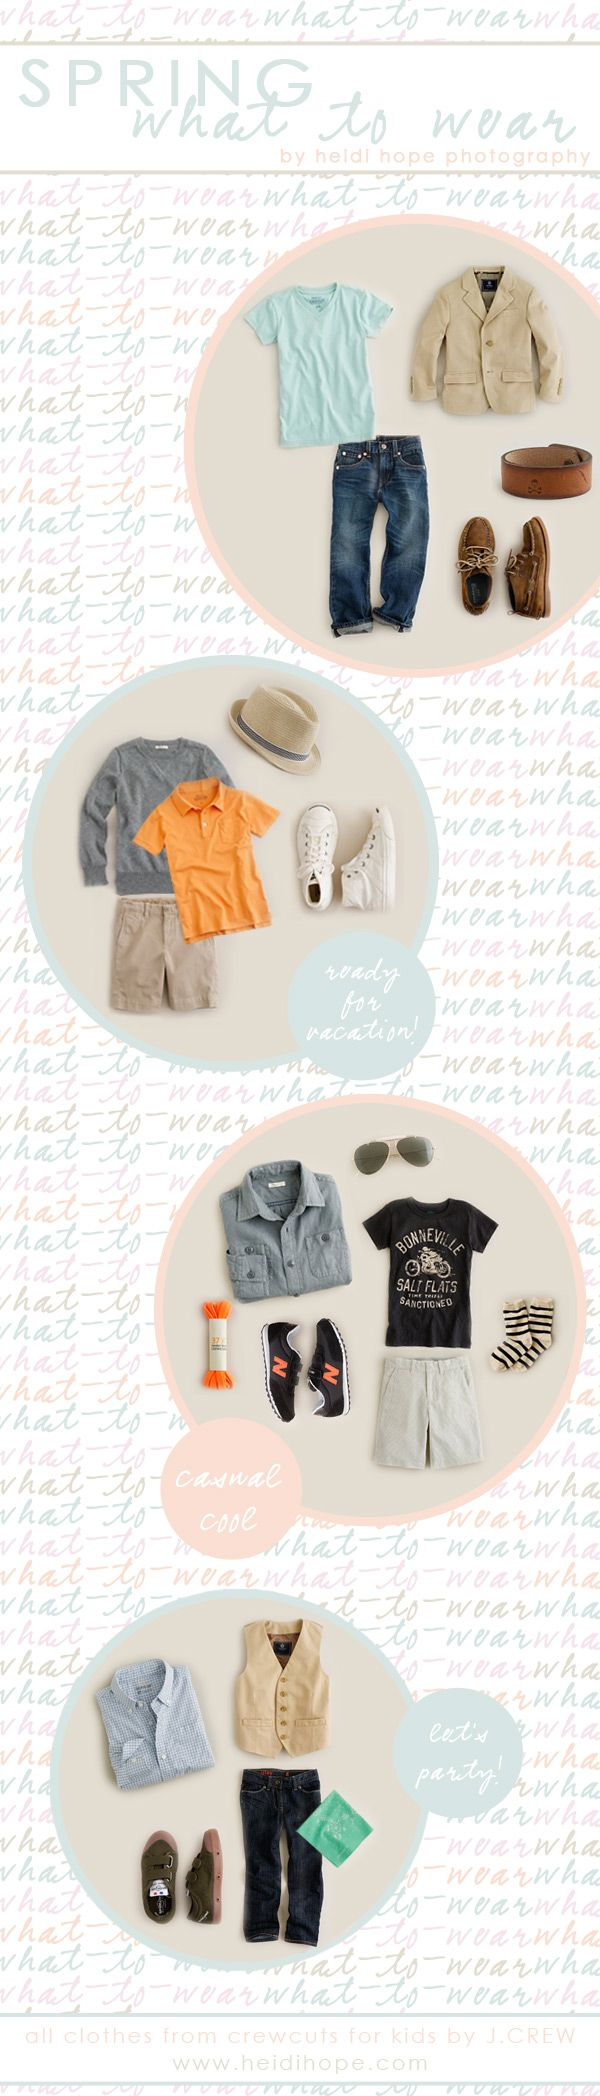 Spring What to Wear Guide for Boys.